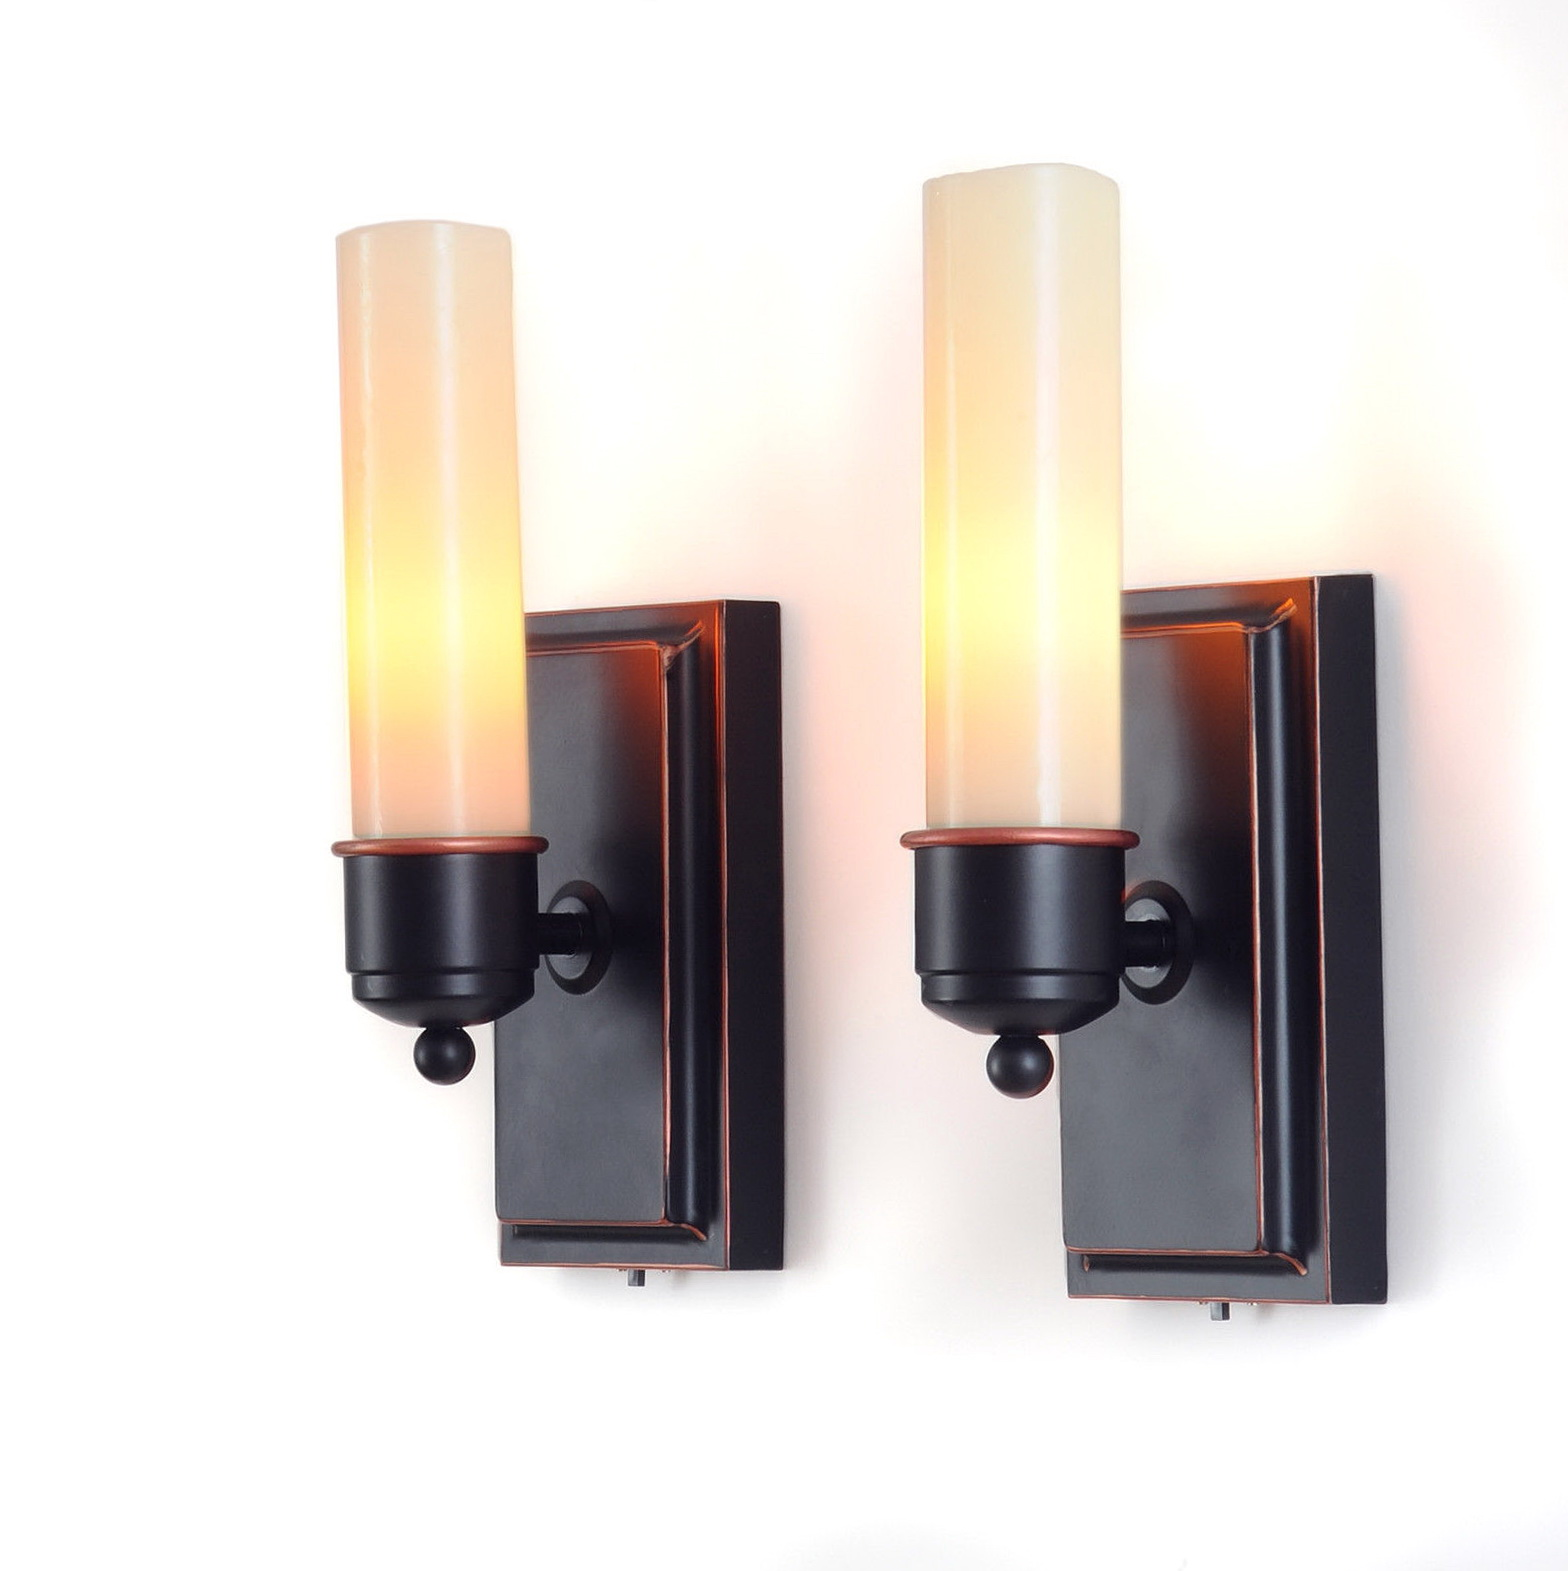 Change the look of your garden with Wall light battery operated Warisan Lighting